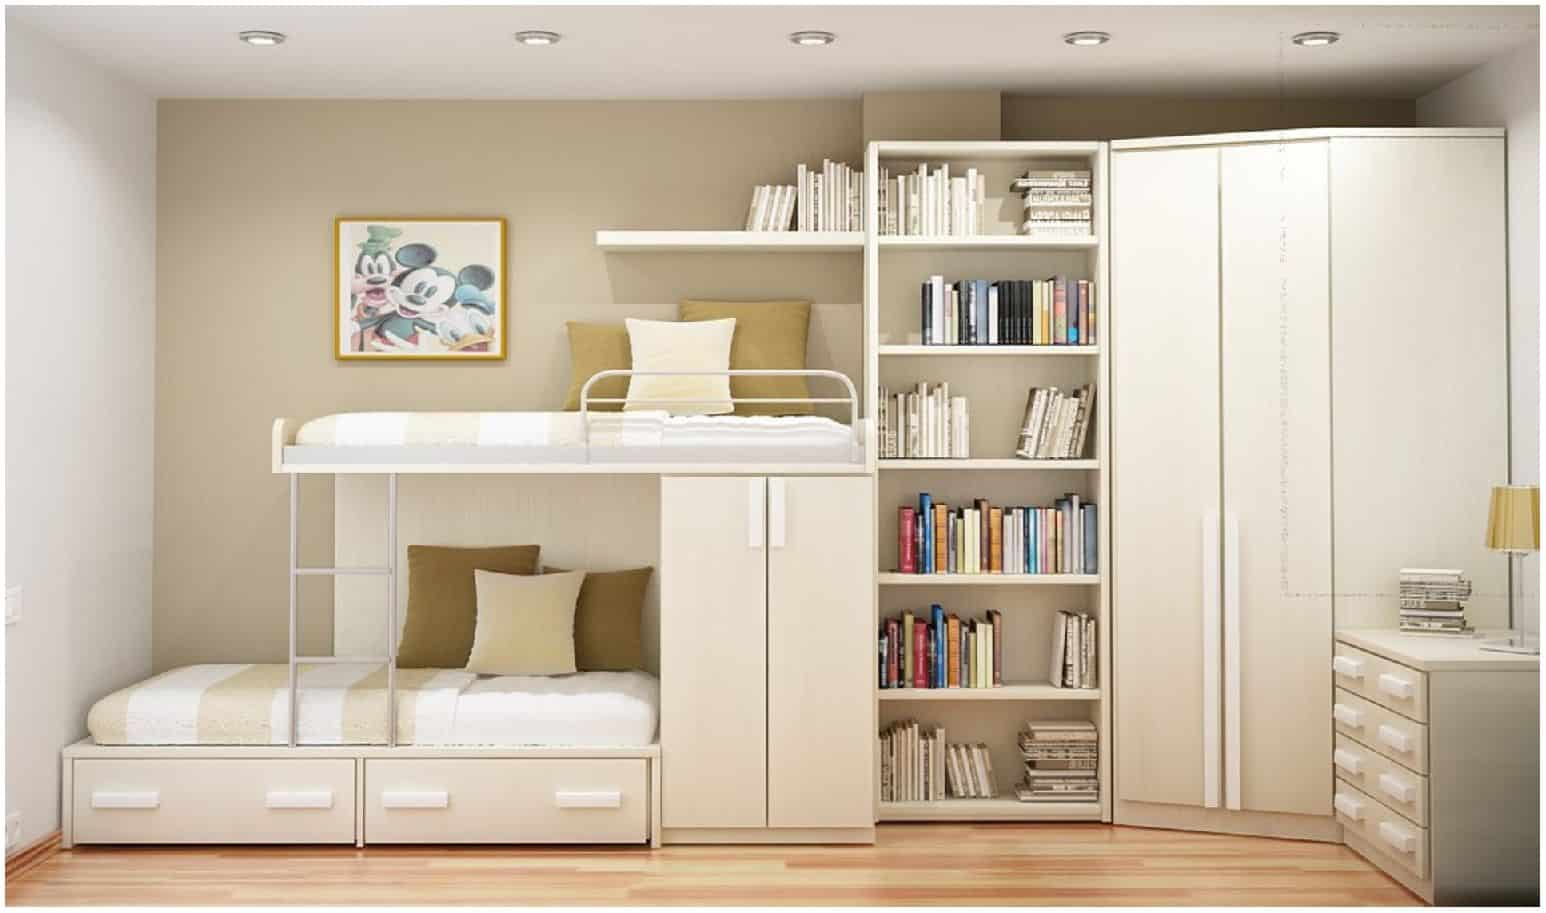 Easy Space Saving Furniture hacks for living rooms in 2021 2